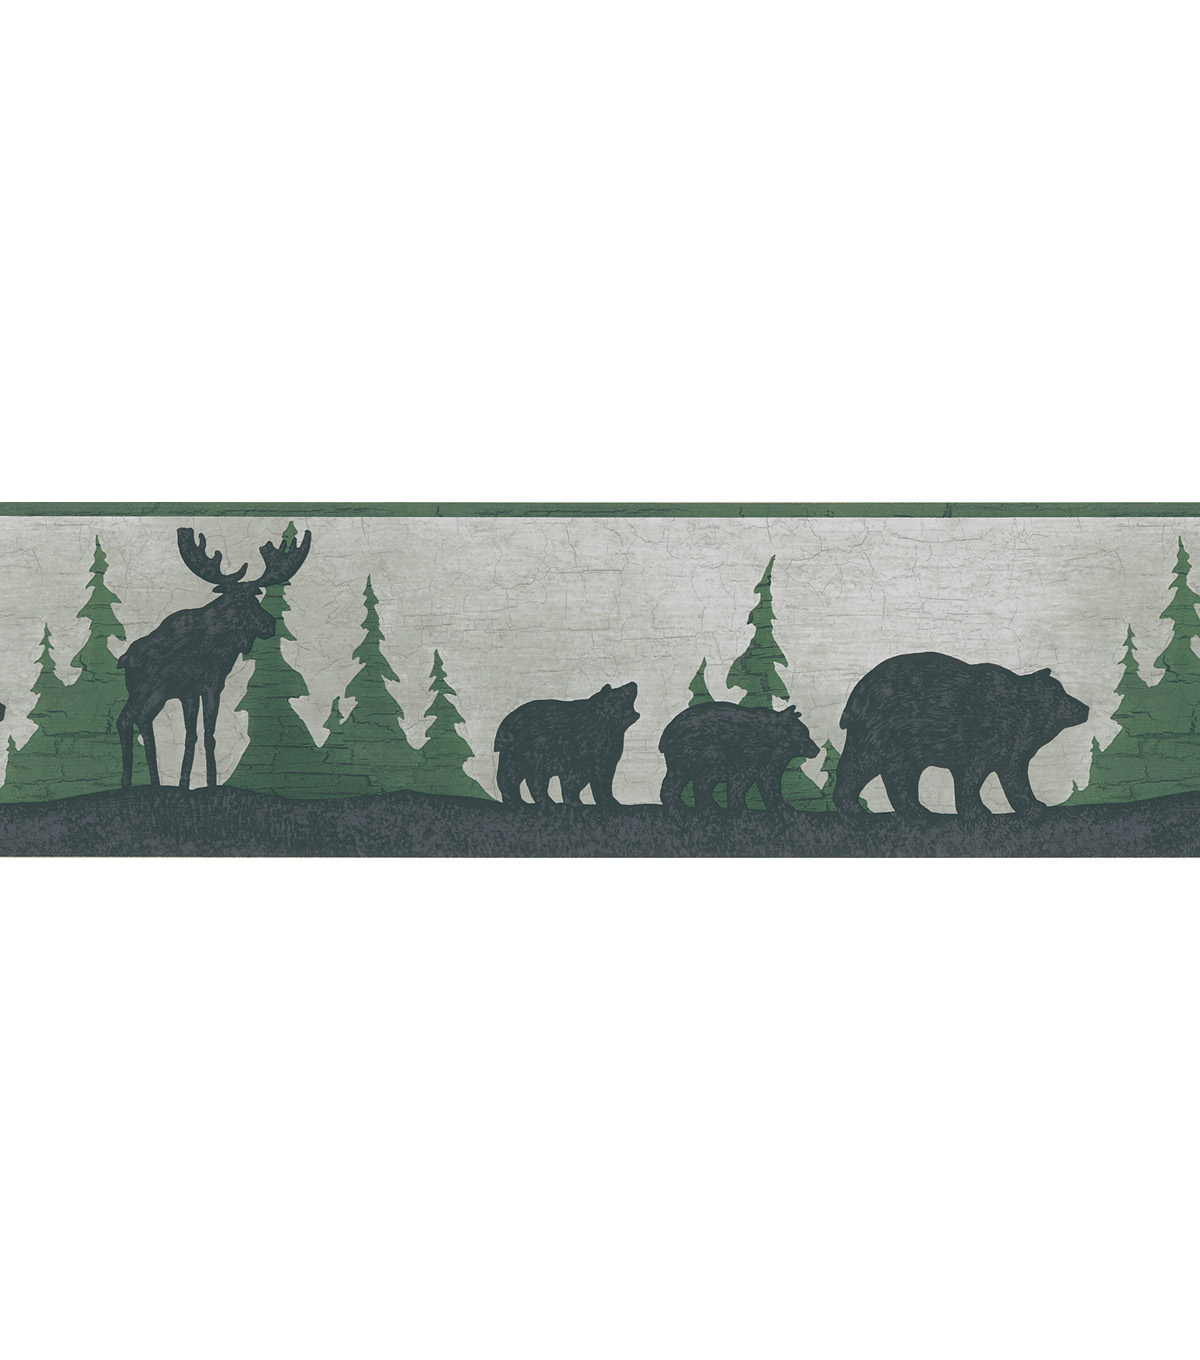 Bear And Moose Silhouette Wallpaper Border SampleGreat Woods Grey Bear 1200x1360